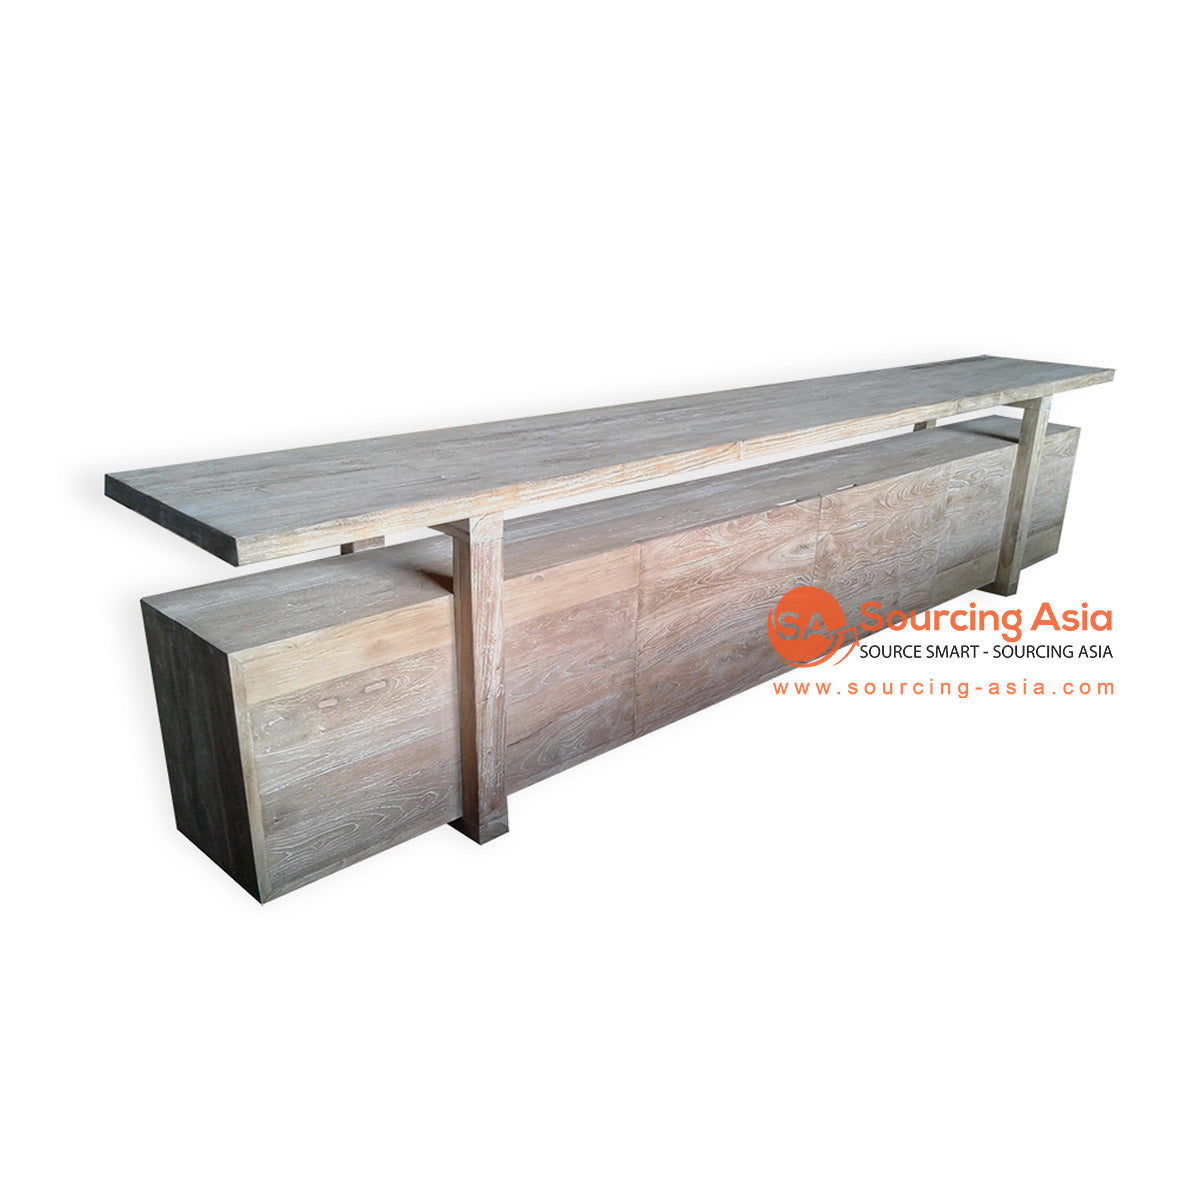 ECL105 RECYCLED TEAK CONSOLE